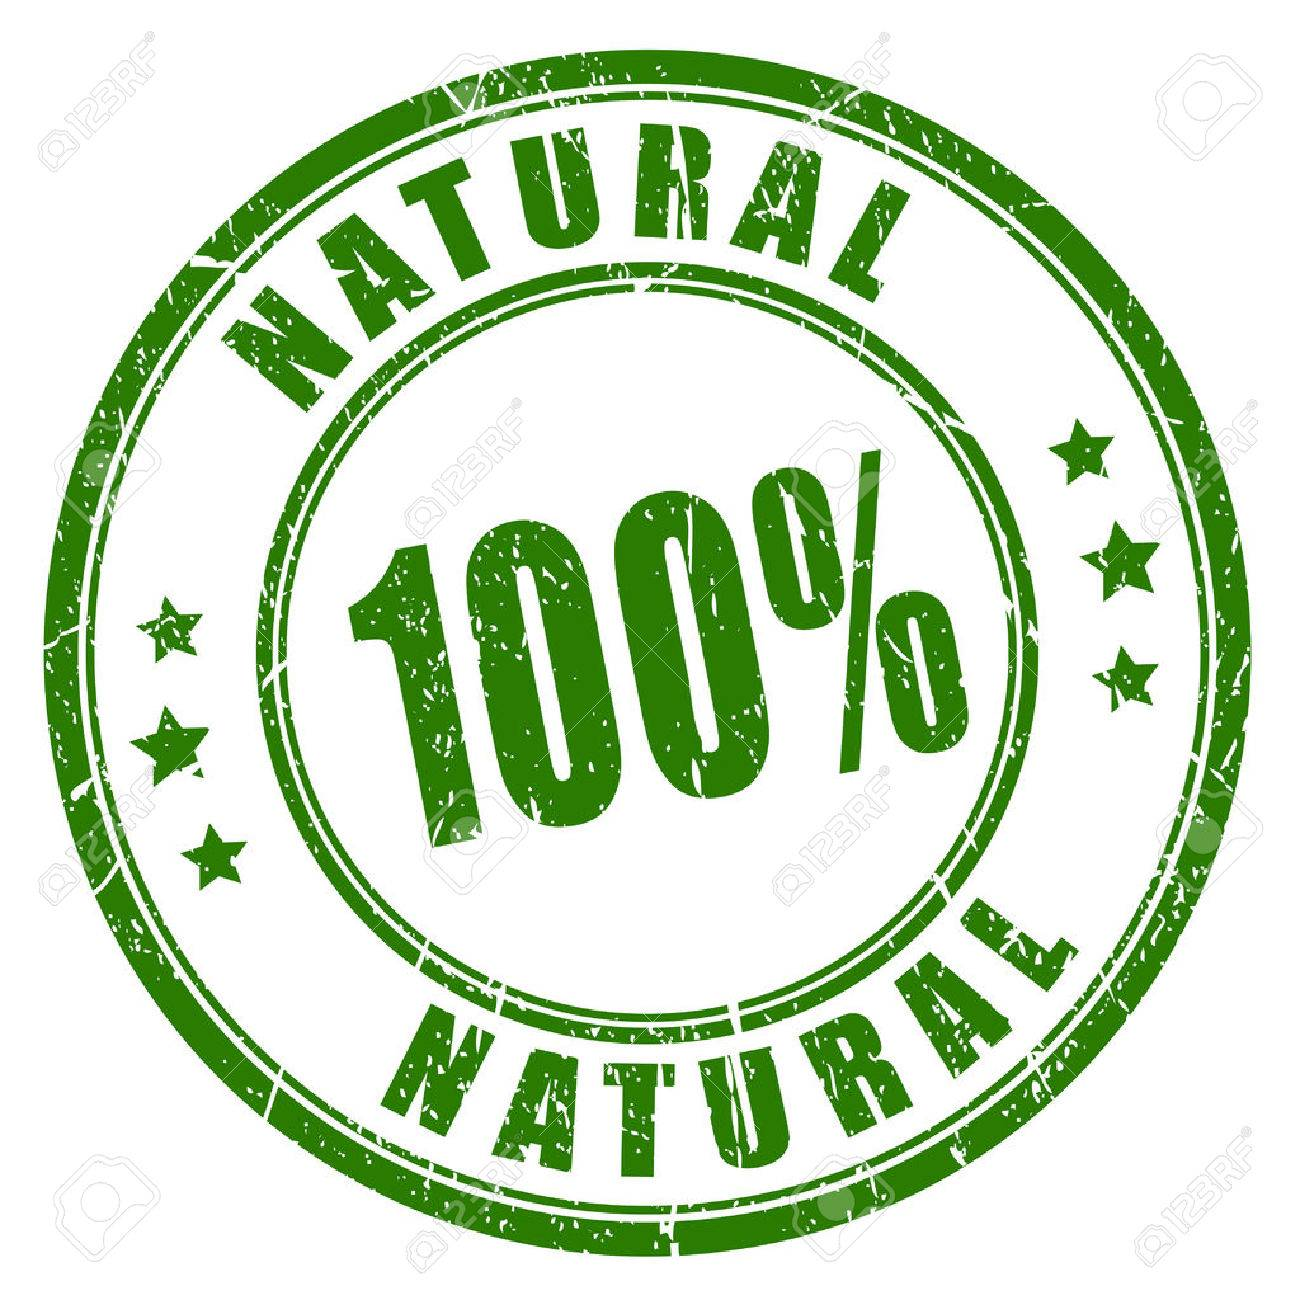 100 natural rubber stamp - 56948726